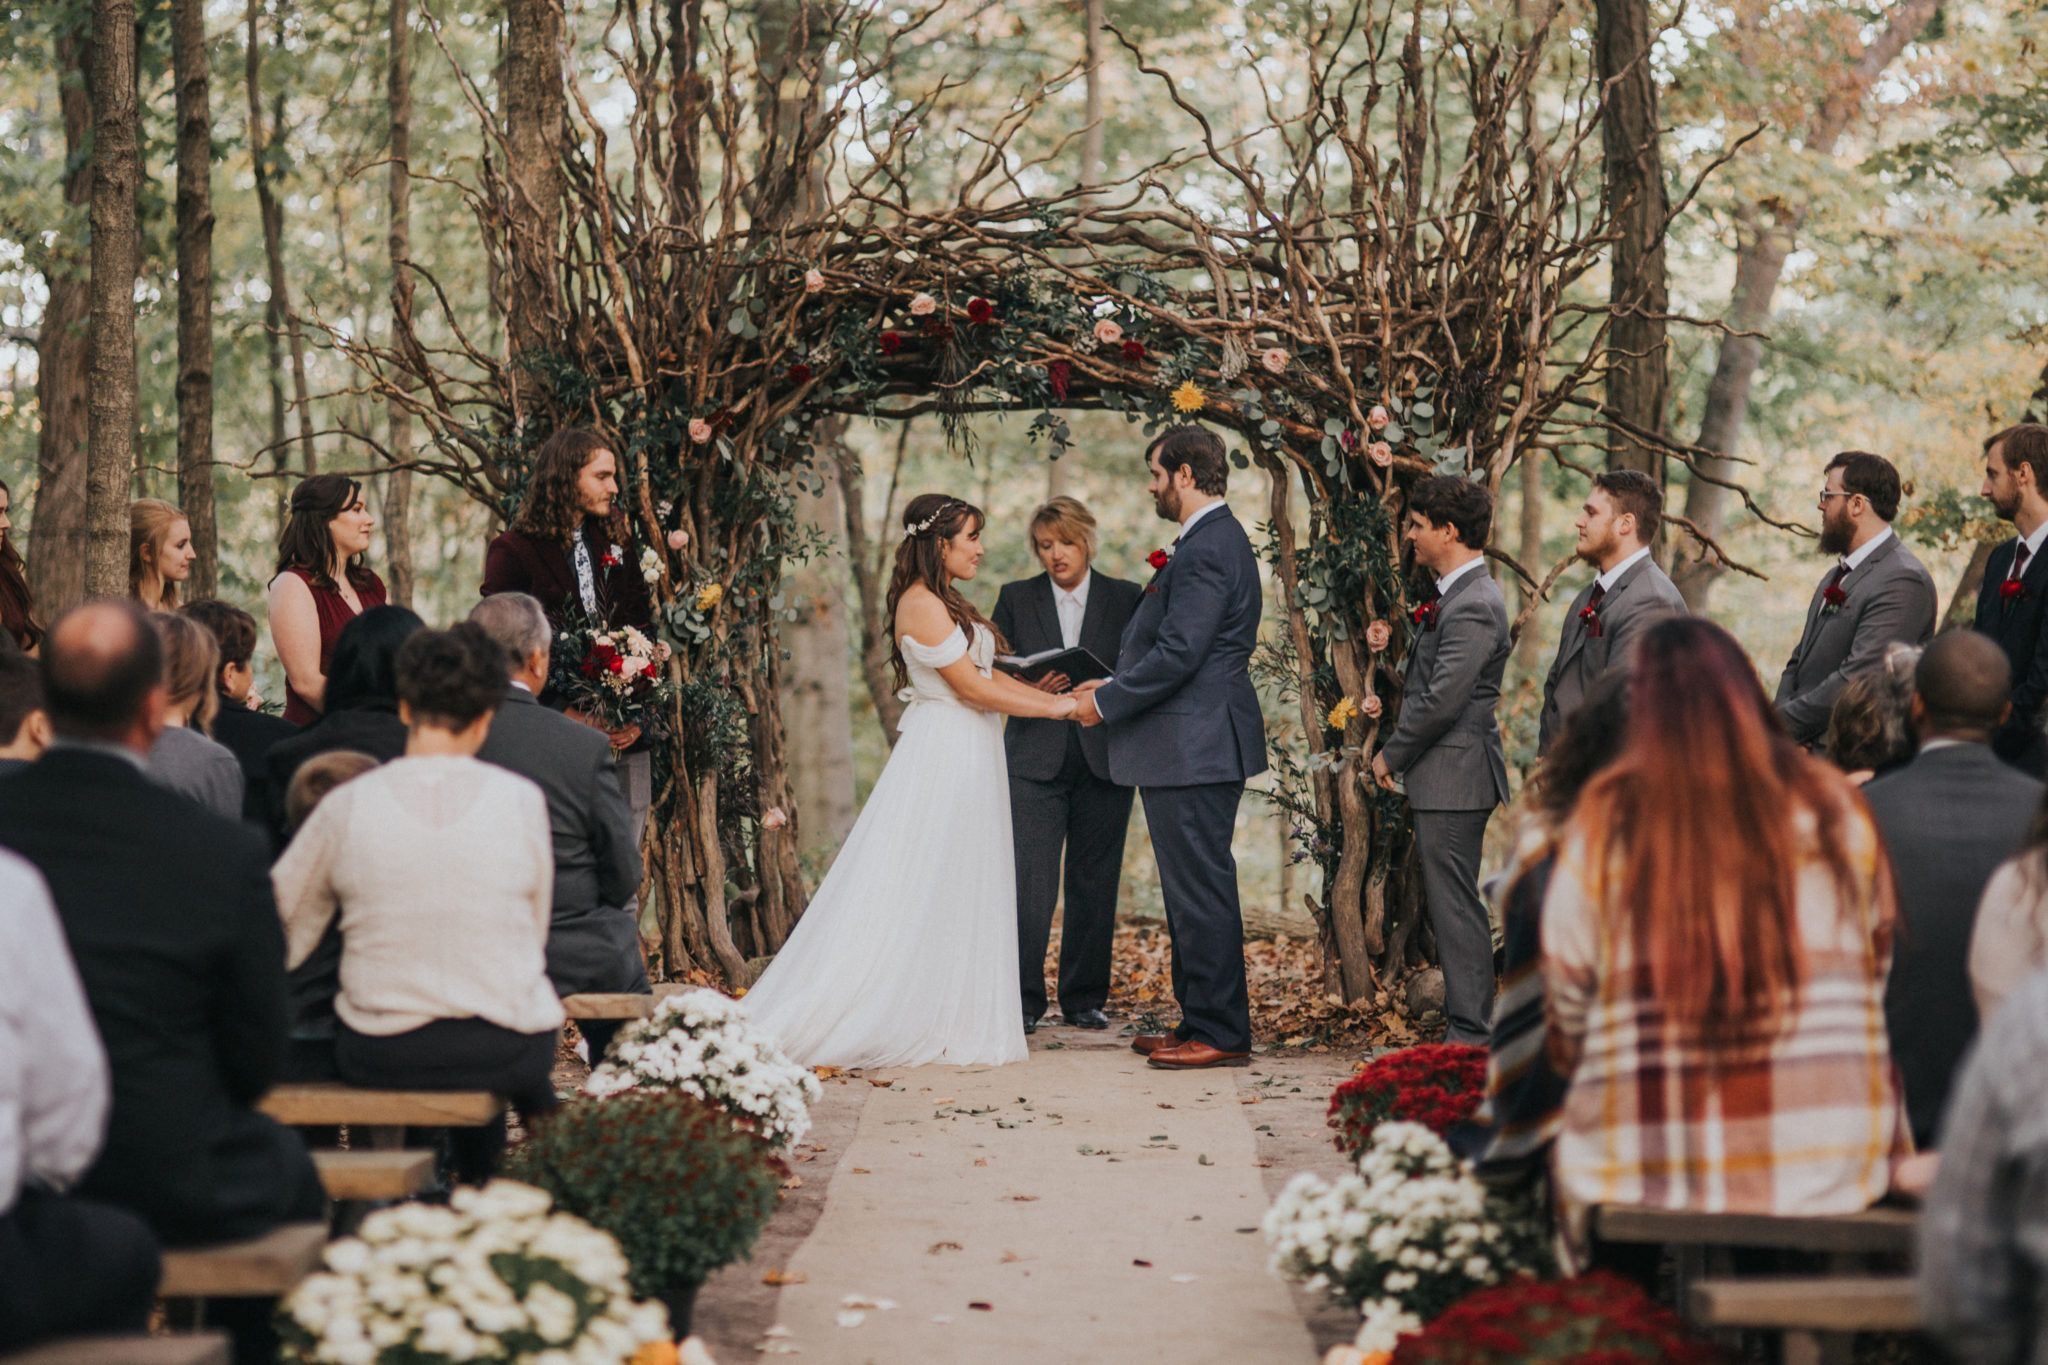 10 Best Ohio Venues for Your Intimate Wedding Day in 2020 ...